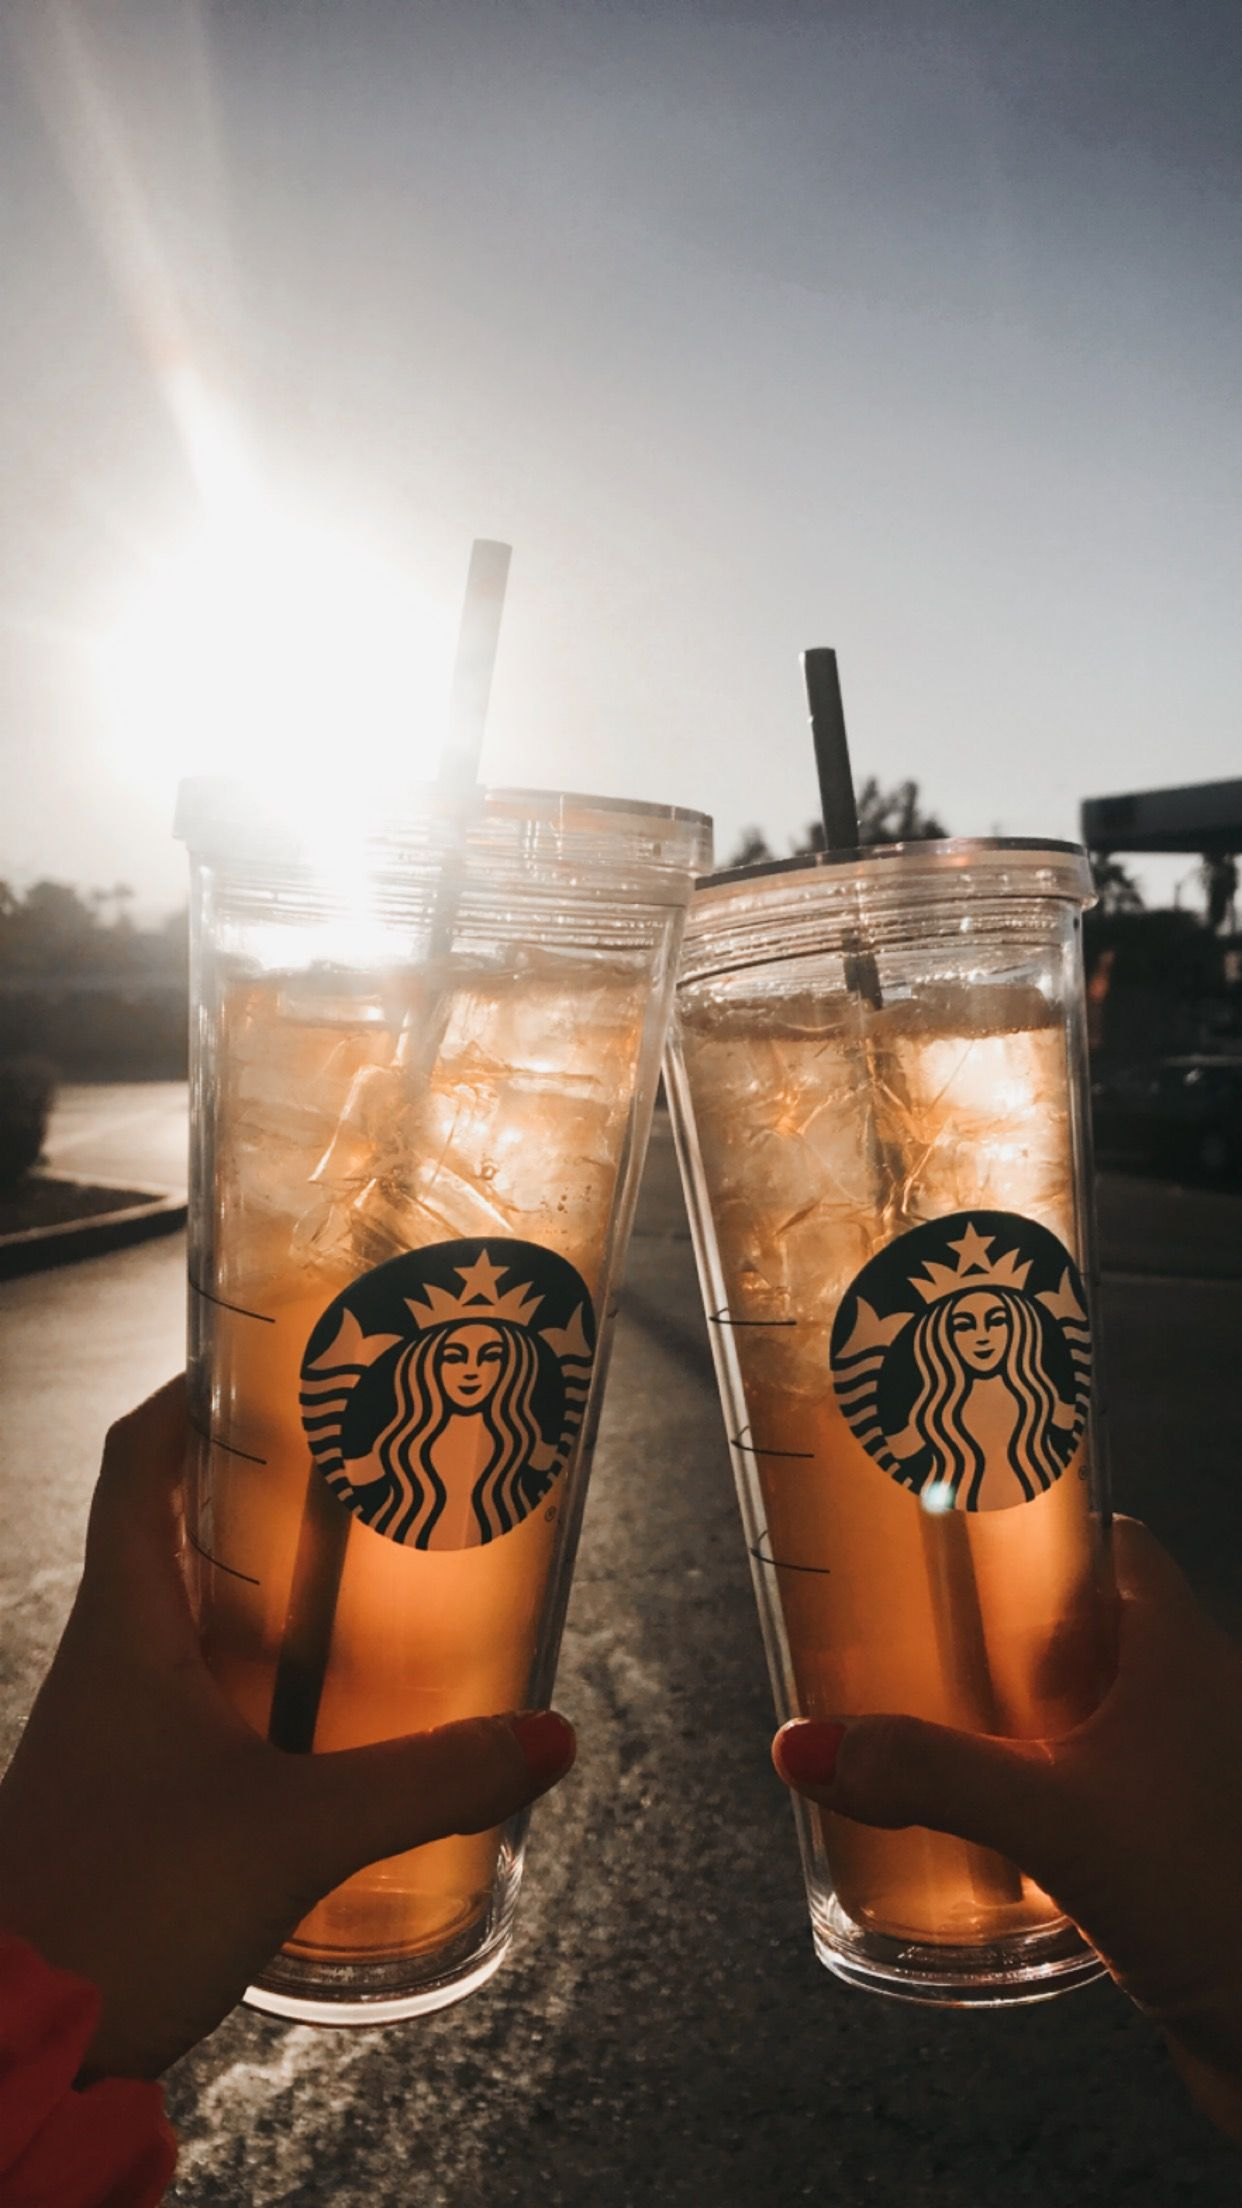 Starbucks cups are taking over